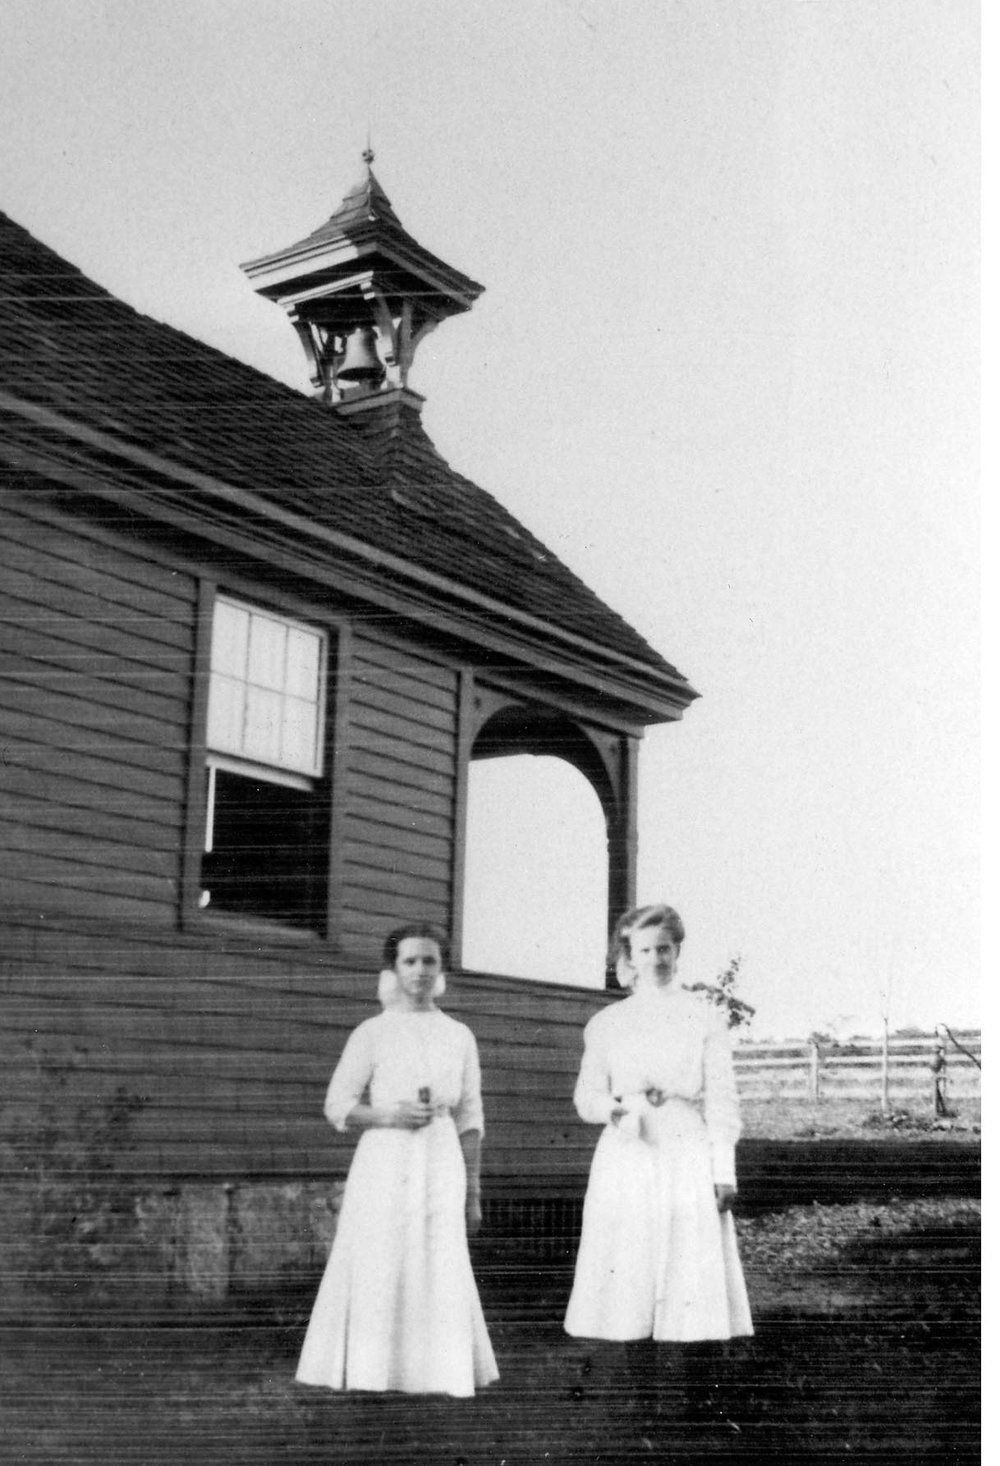 Schoolhouse #2, date unknown